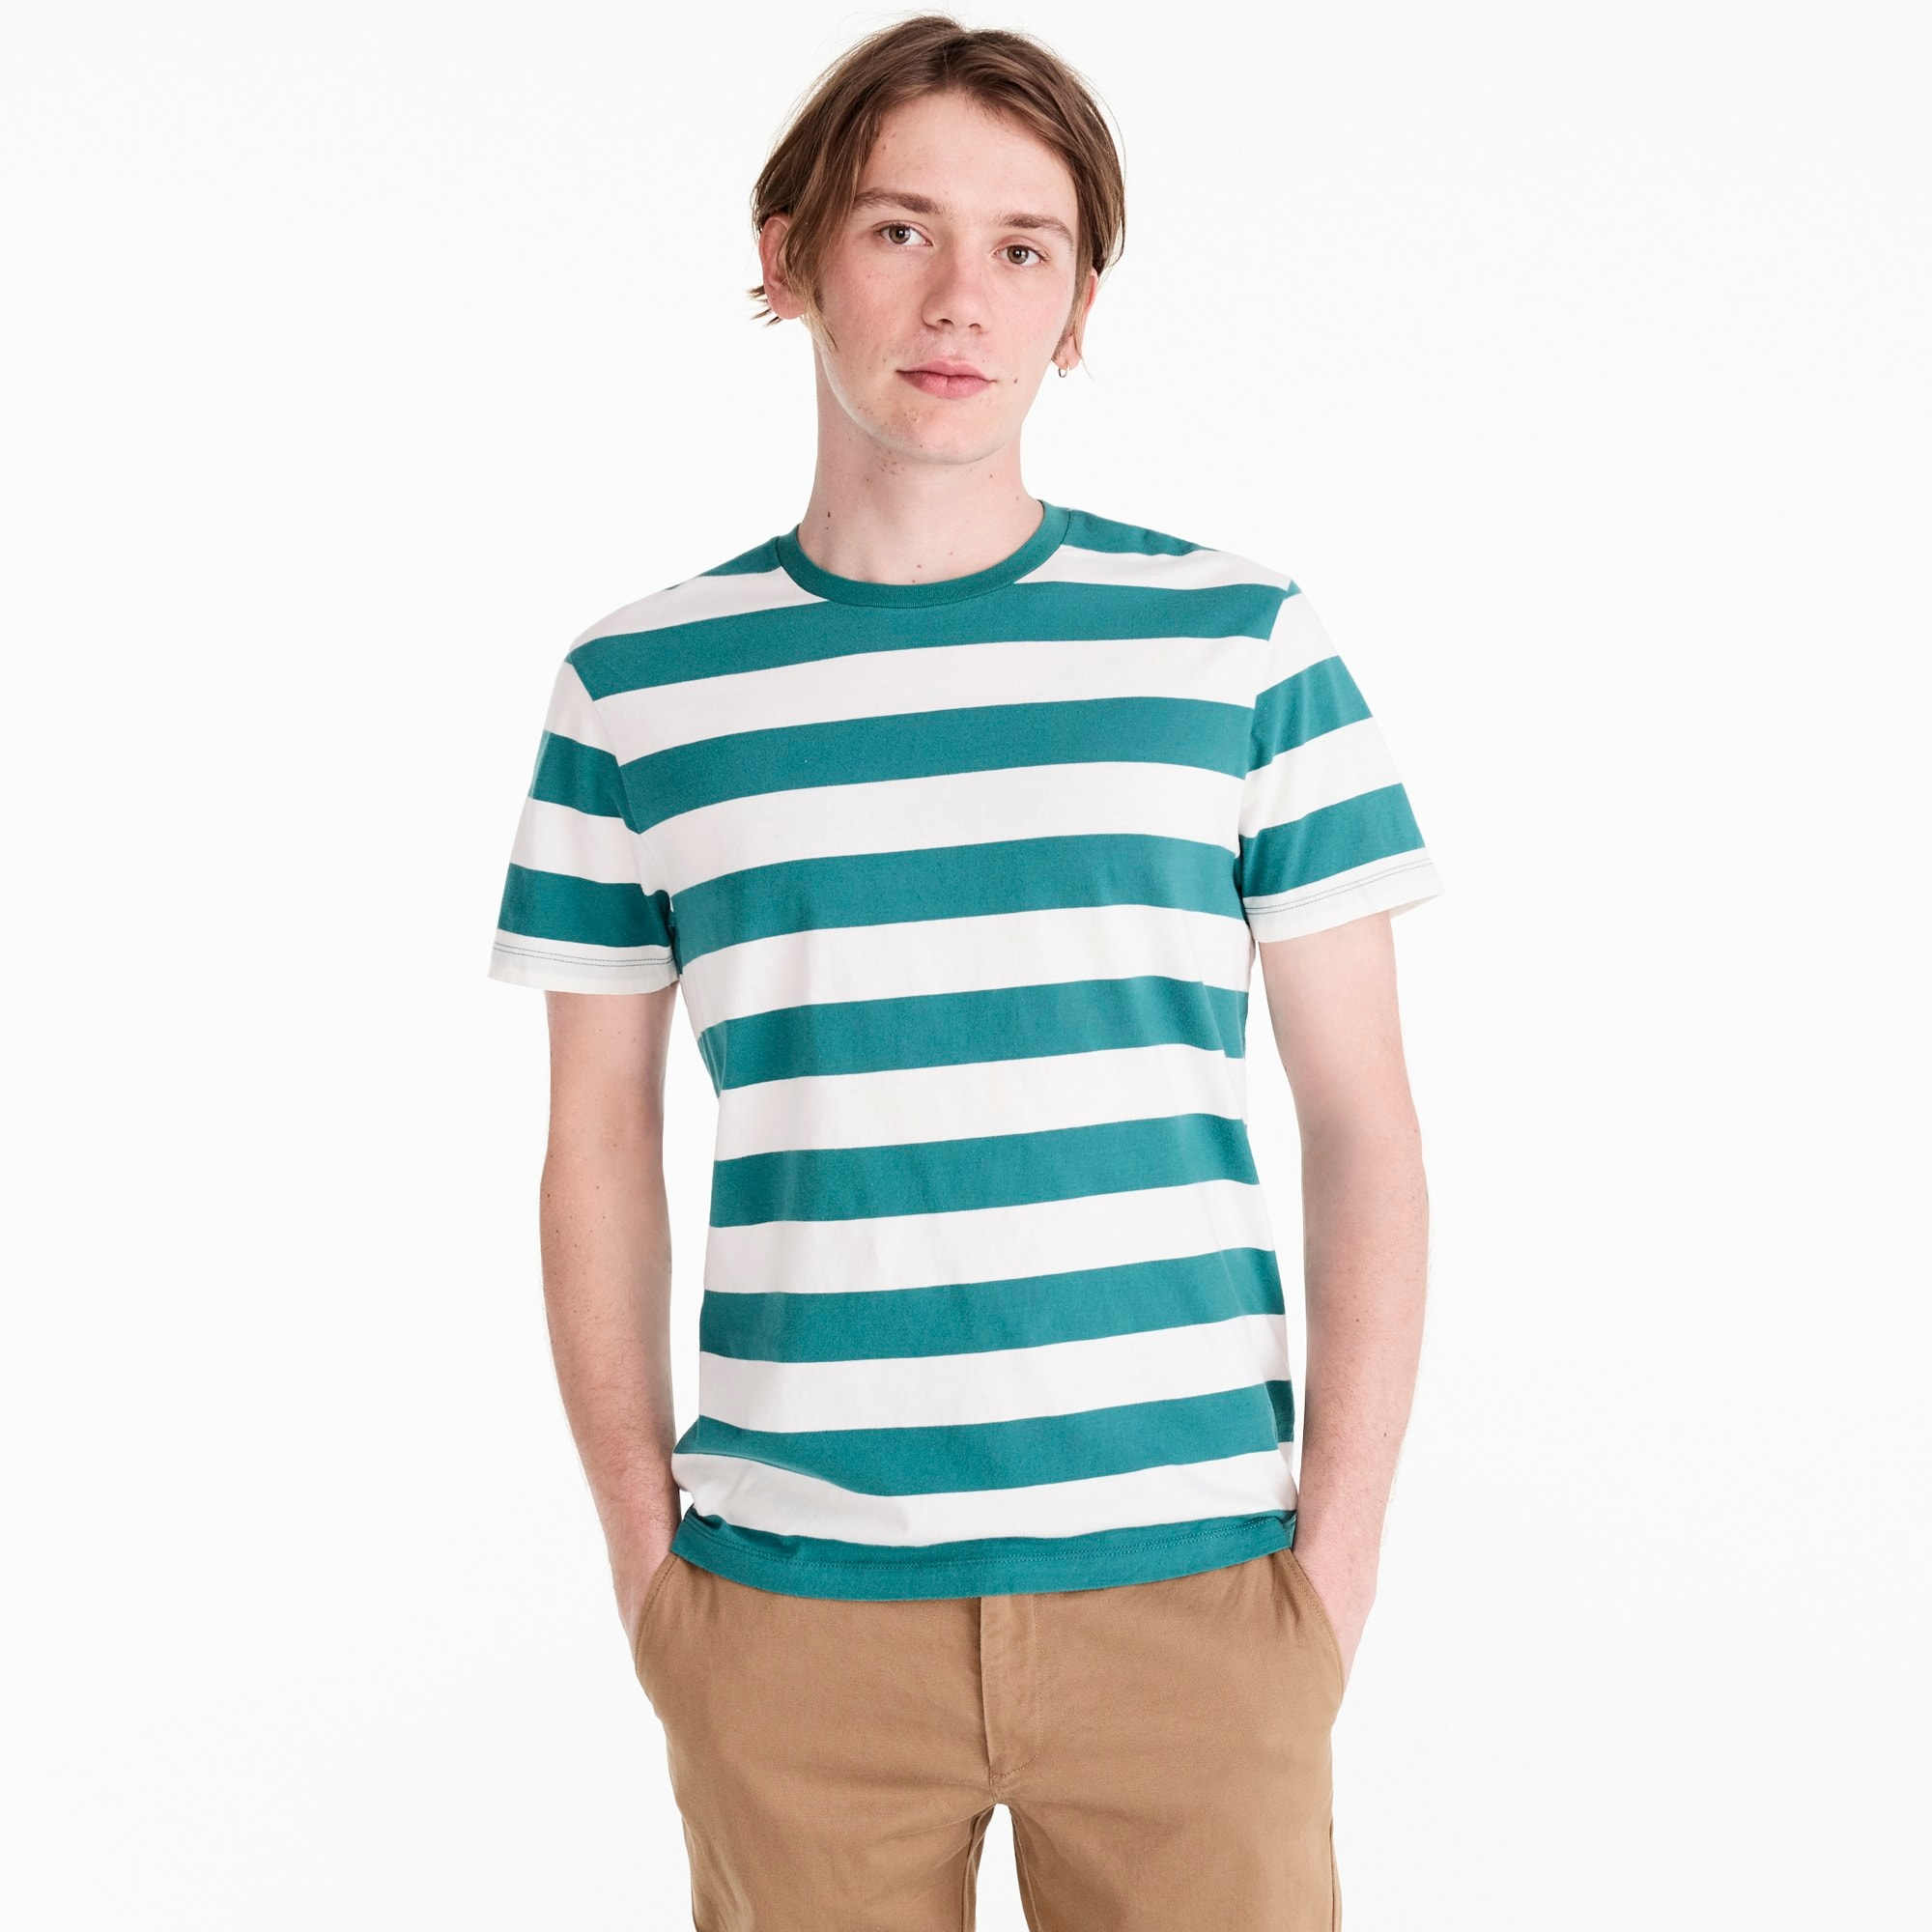 Tall J.Crew Mercantile Broken-in T-shirt in turquoise stripe